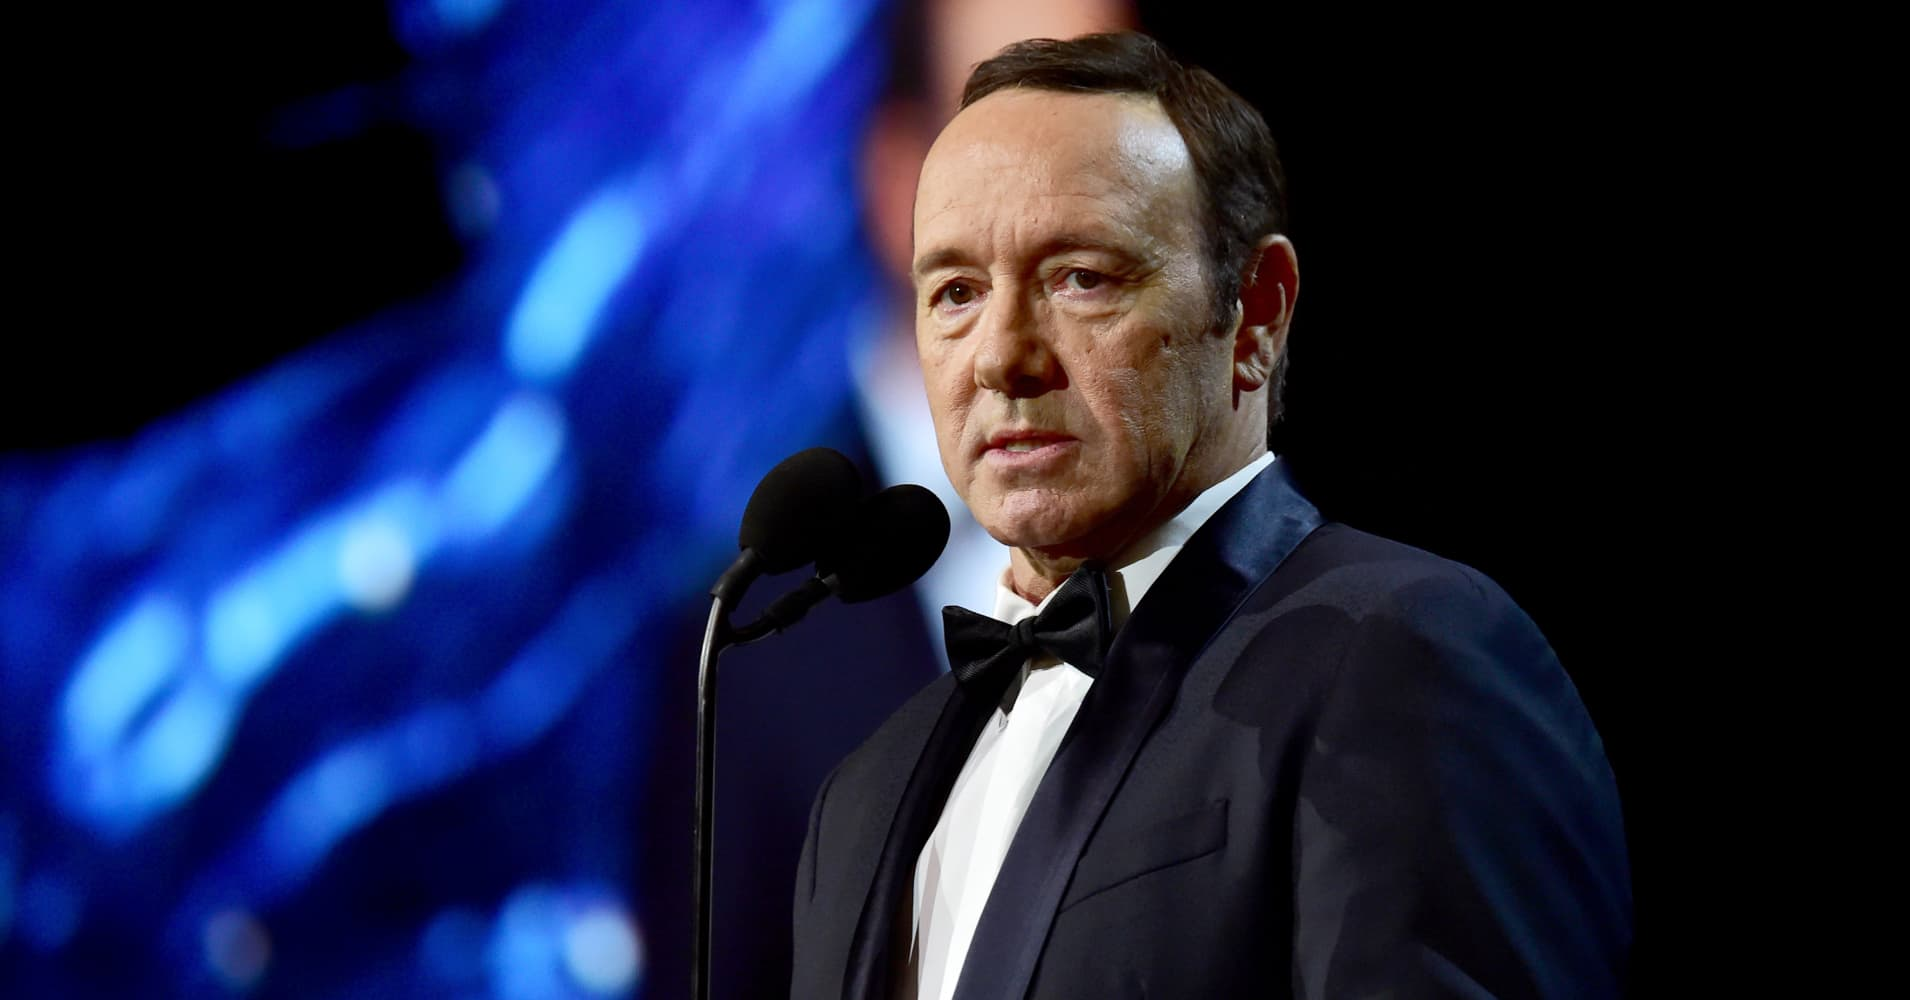 Kevin Spacey has become an Instagram user on February 23, 2016 25